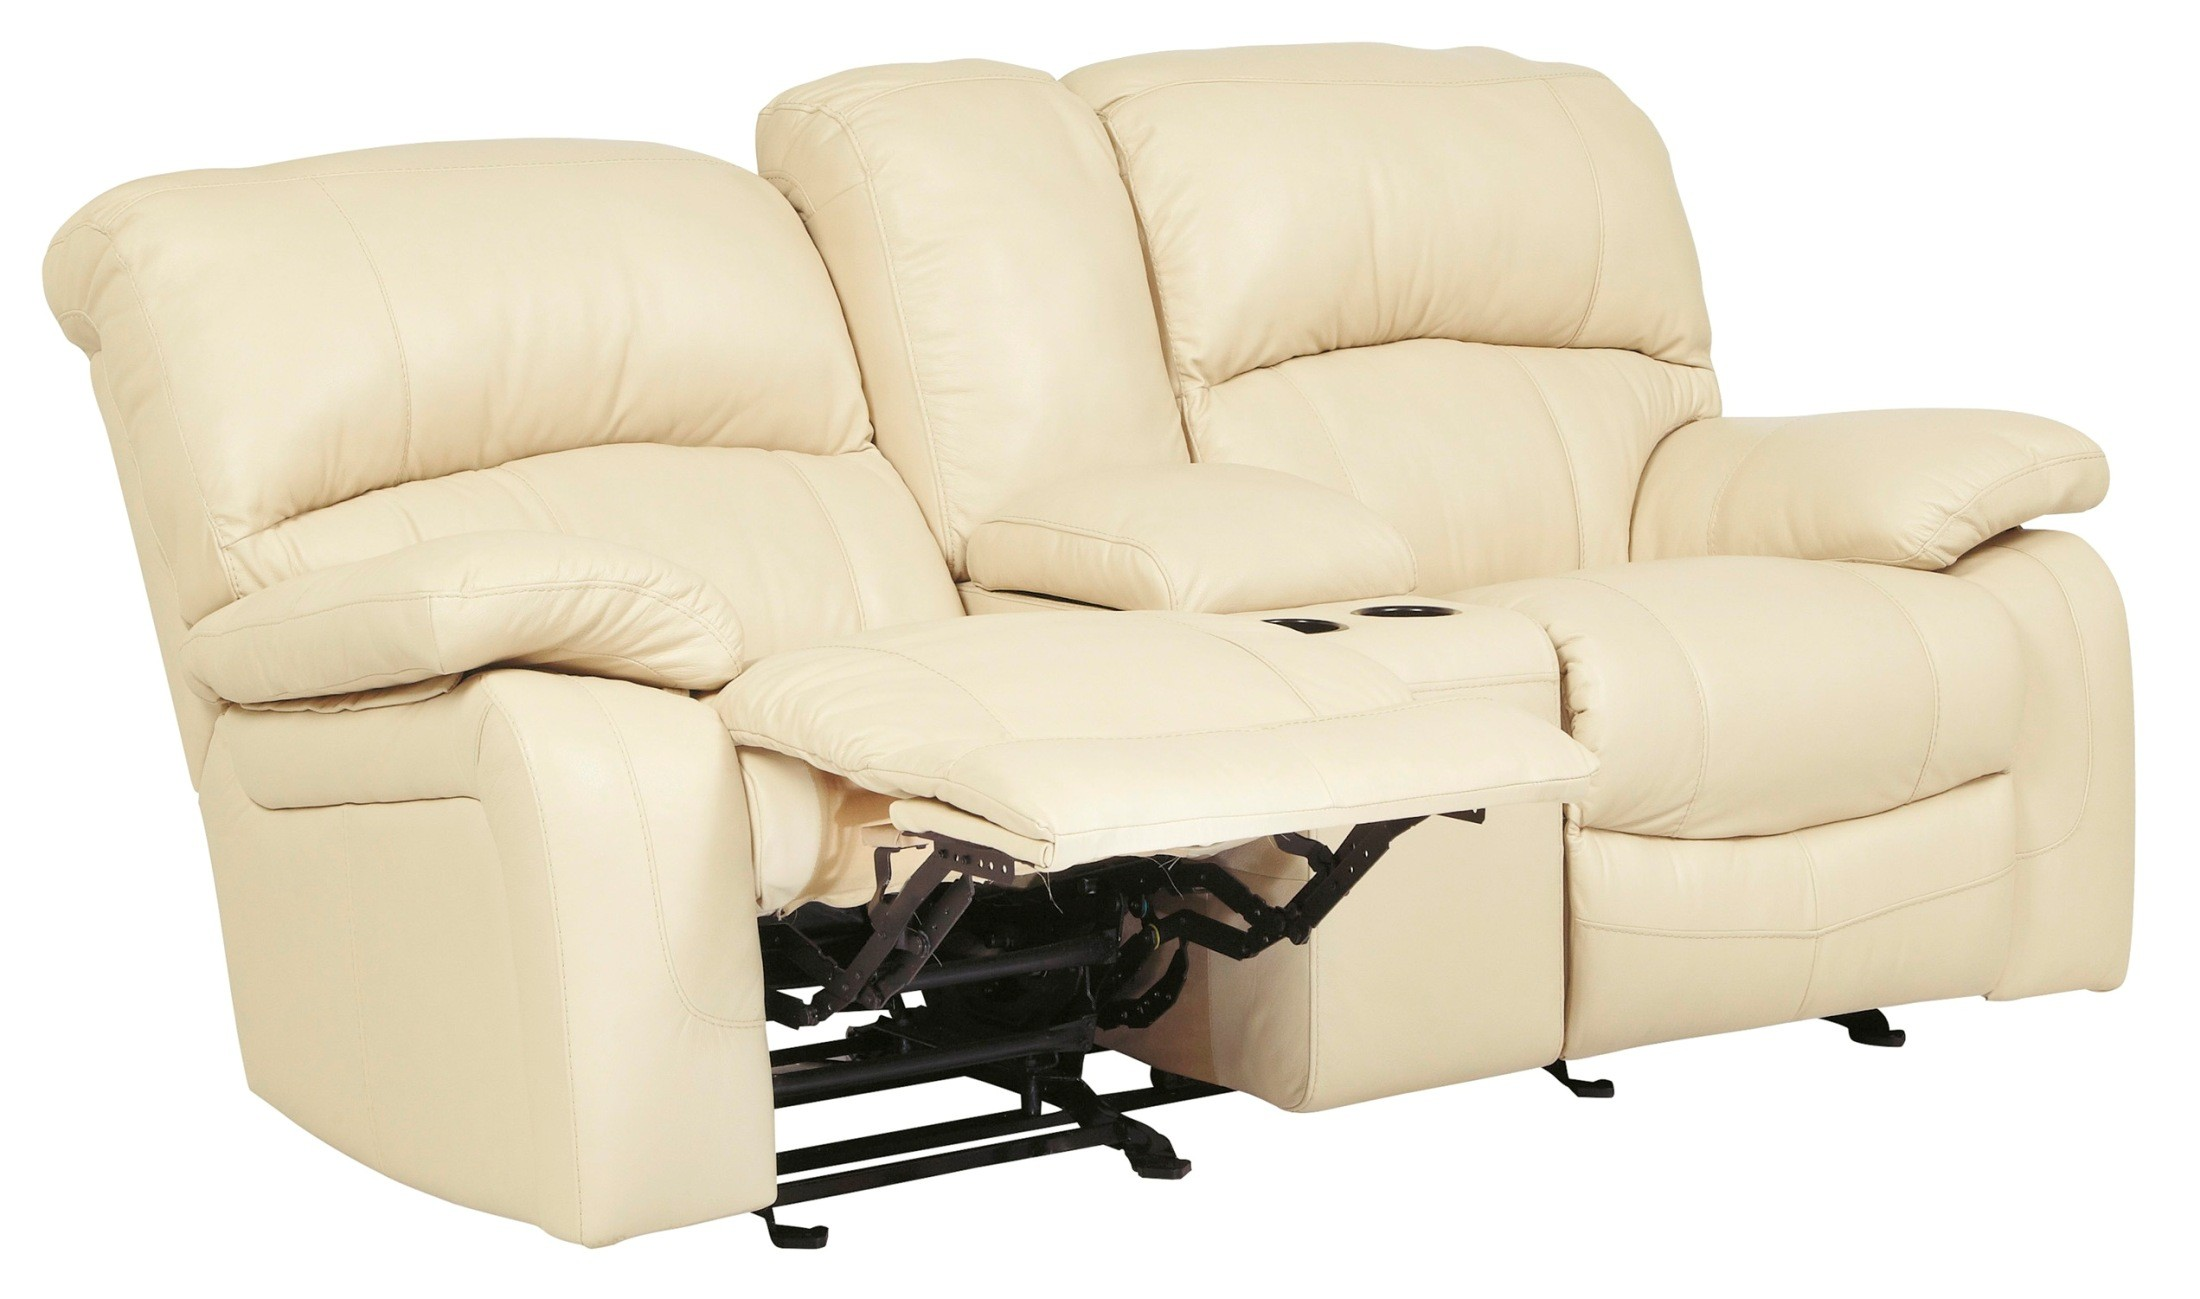 Damacio Cream Glider Power Reclining Loveseat With Console From Ashley U9820191 Coleman